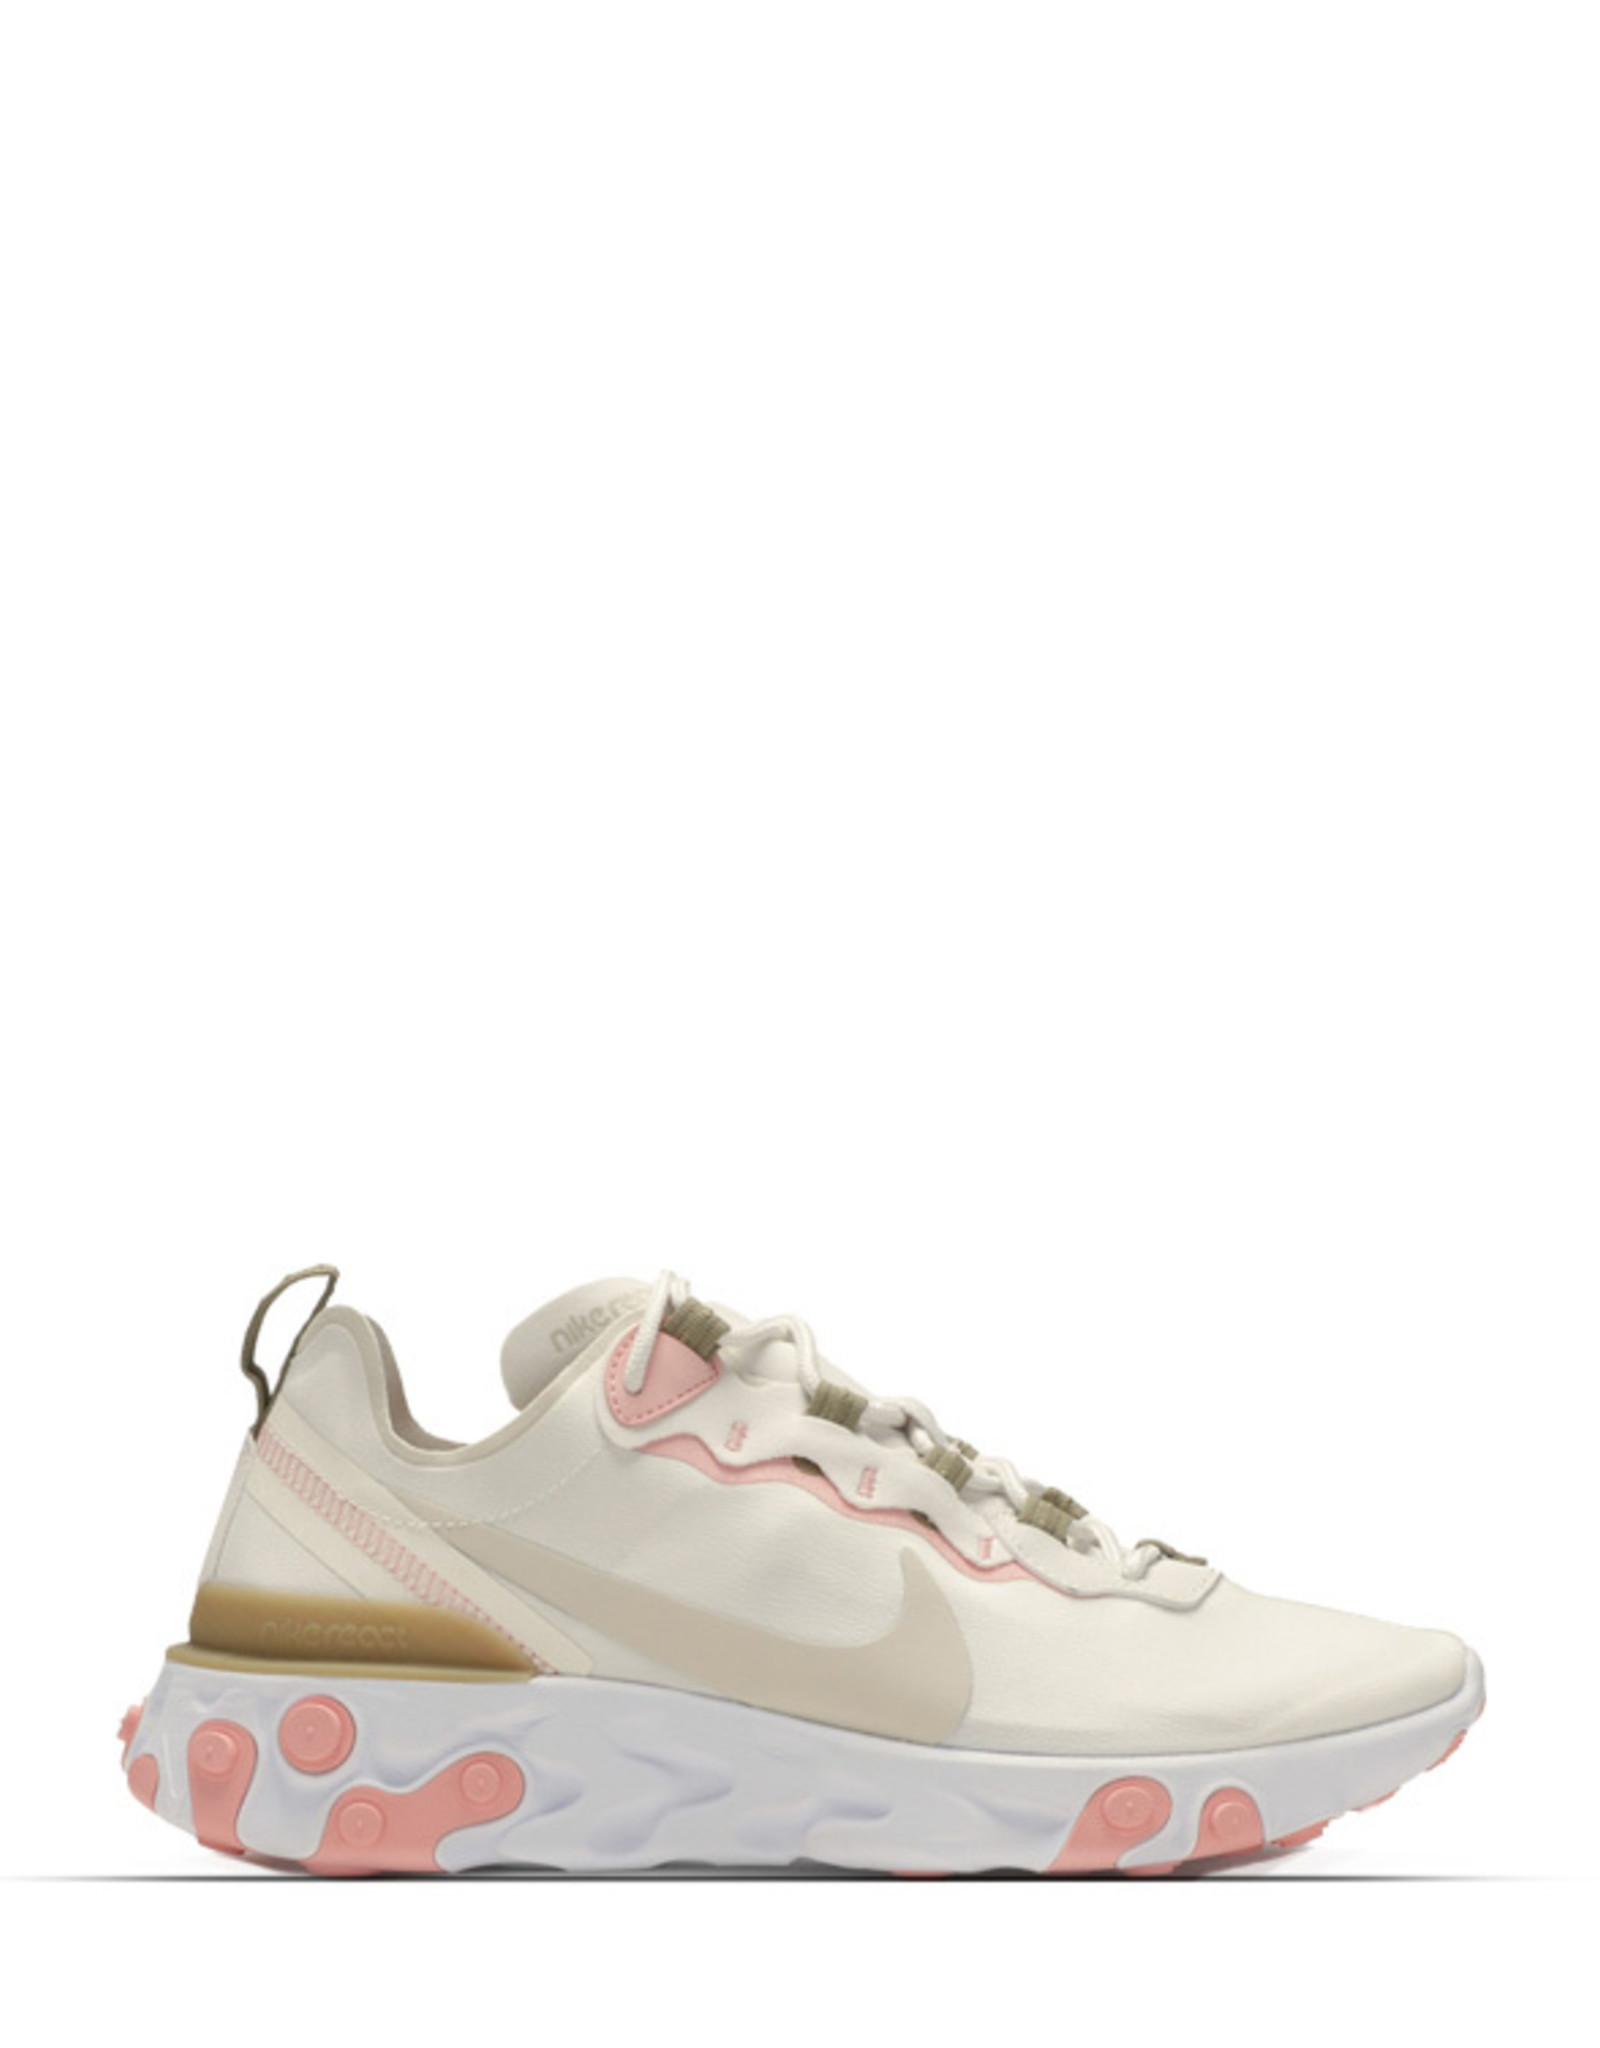 NIKE REACT ELEMENT 55 PHANTOM SOFT PINK NUDES